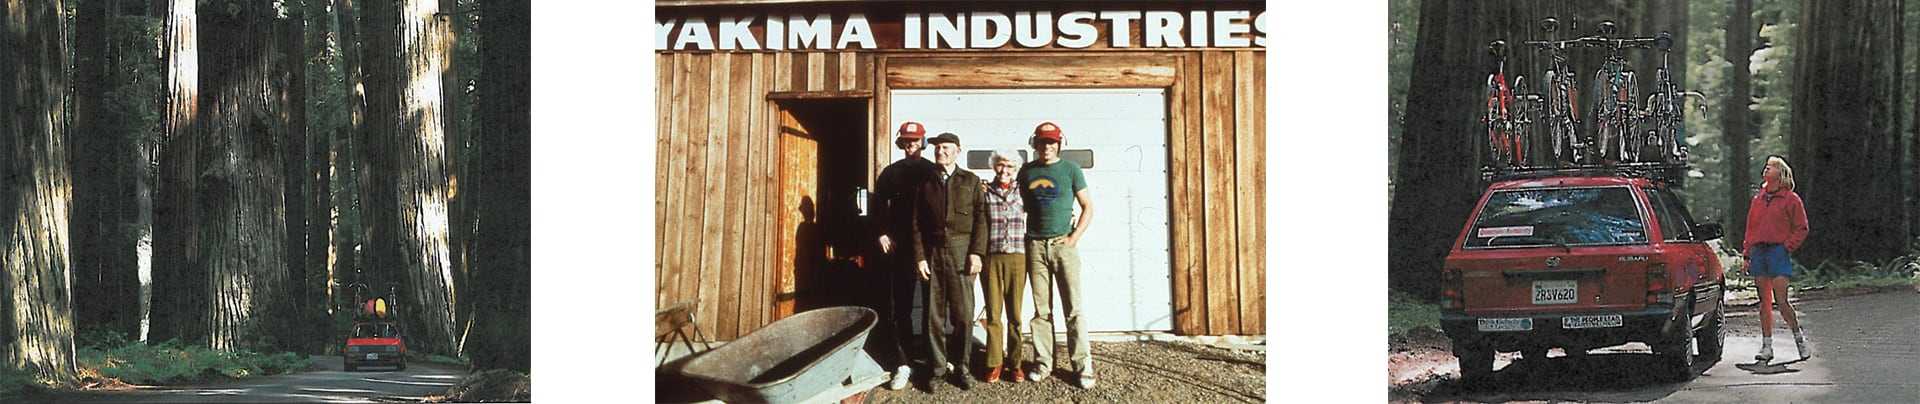 Yakima adventure products early days